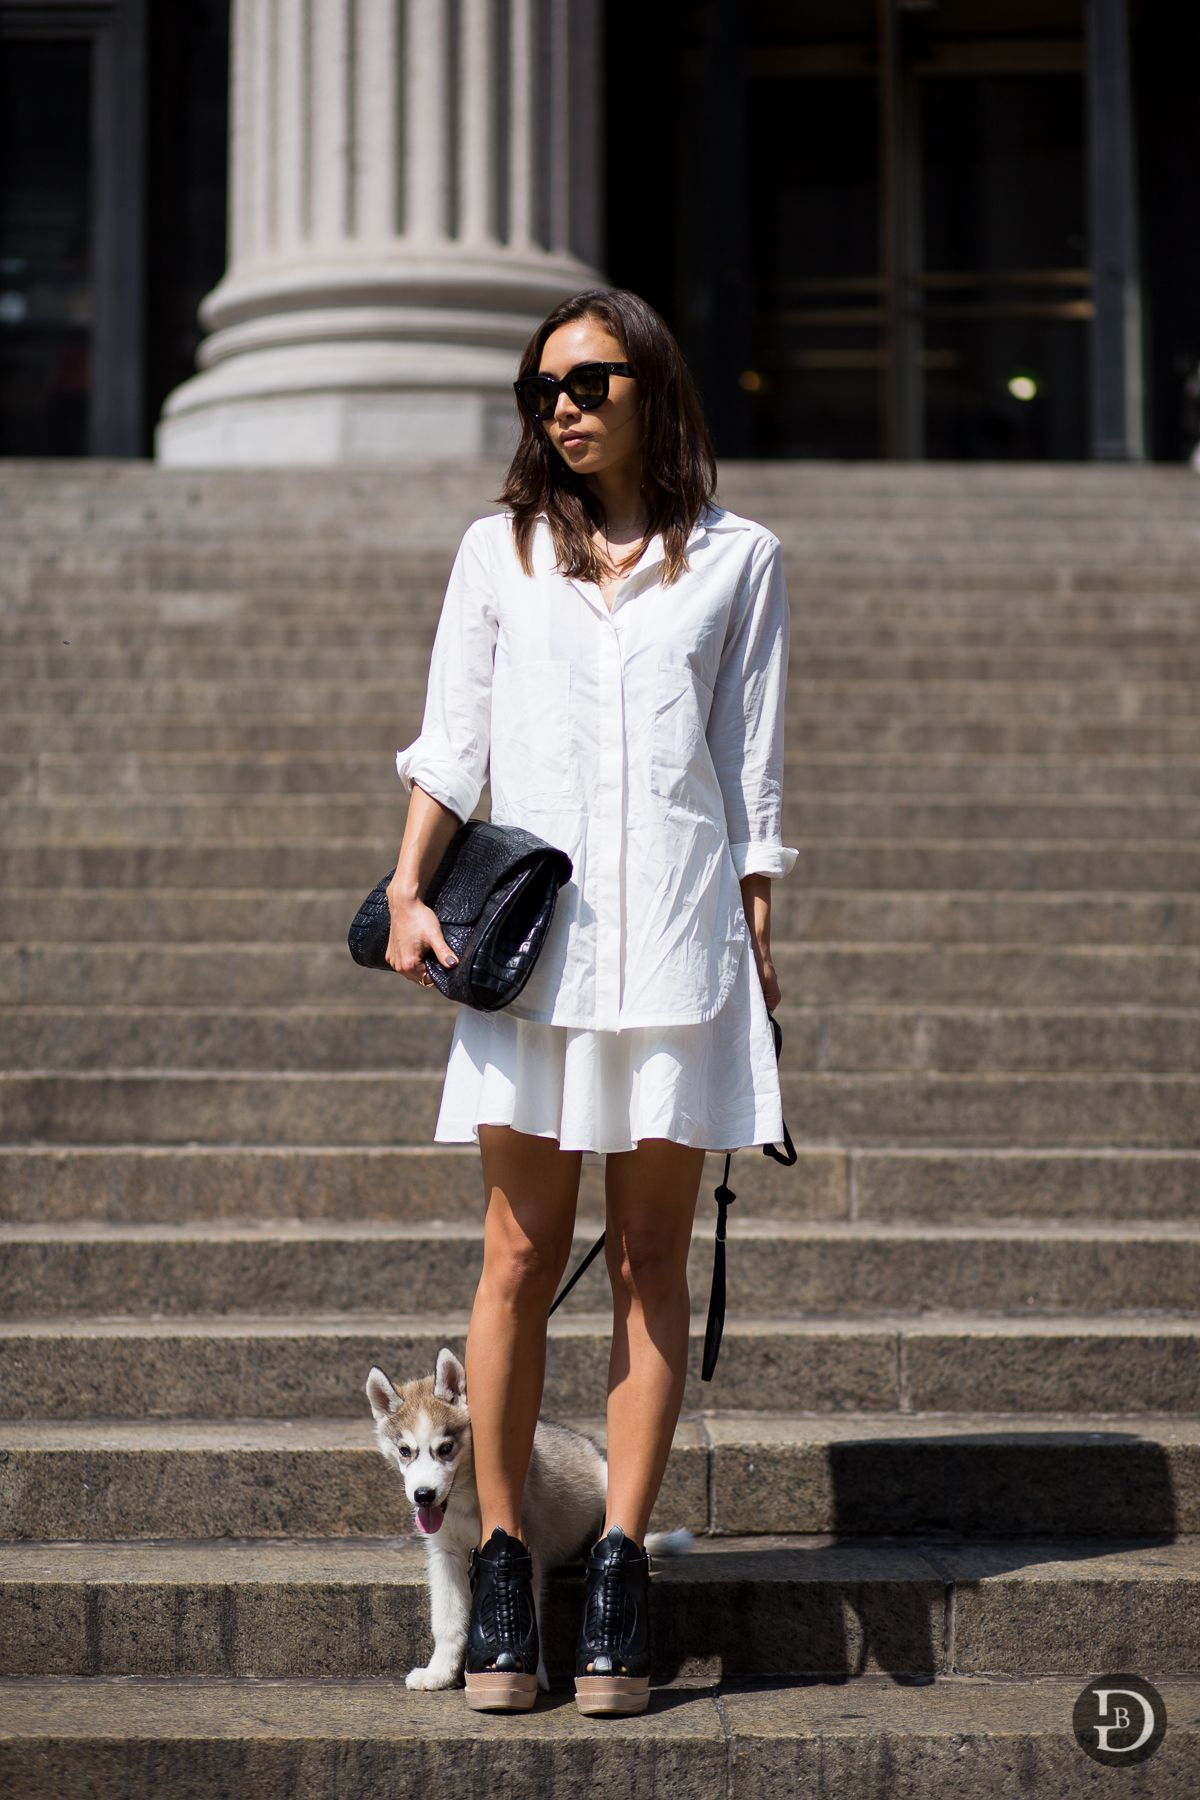 all white. #RumiNeely in NYC. #FashionToast